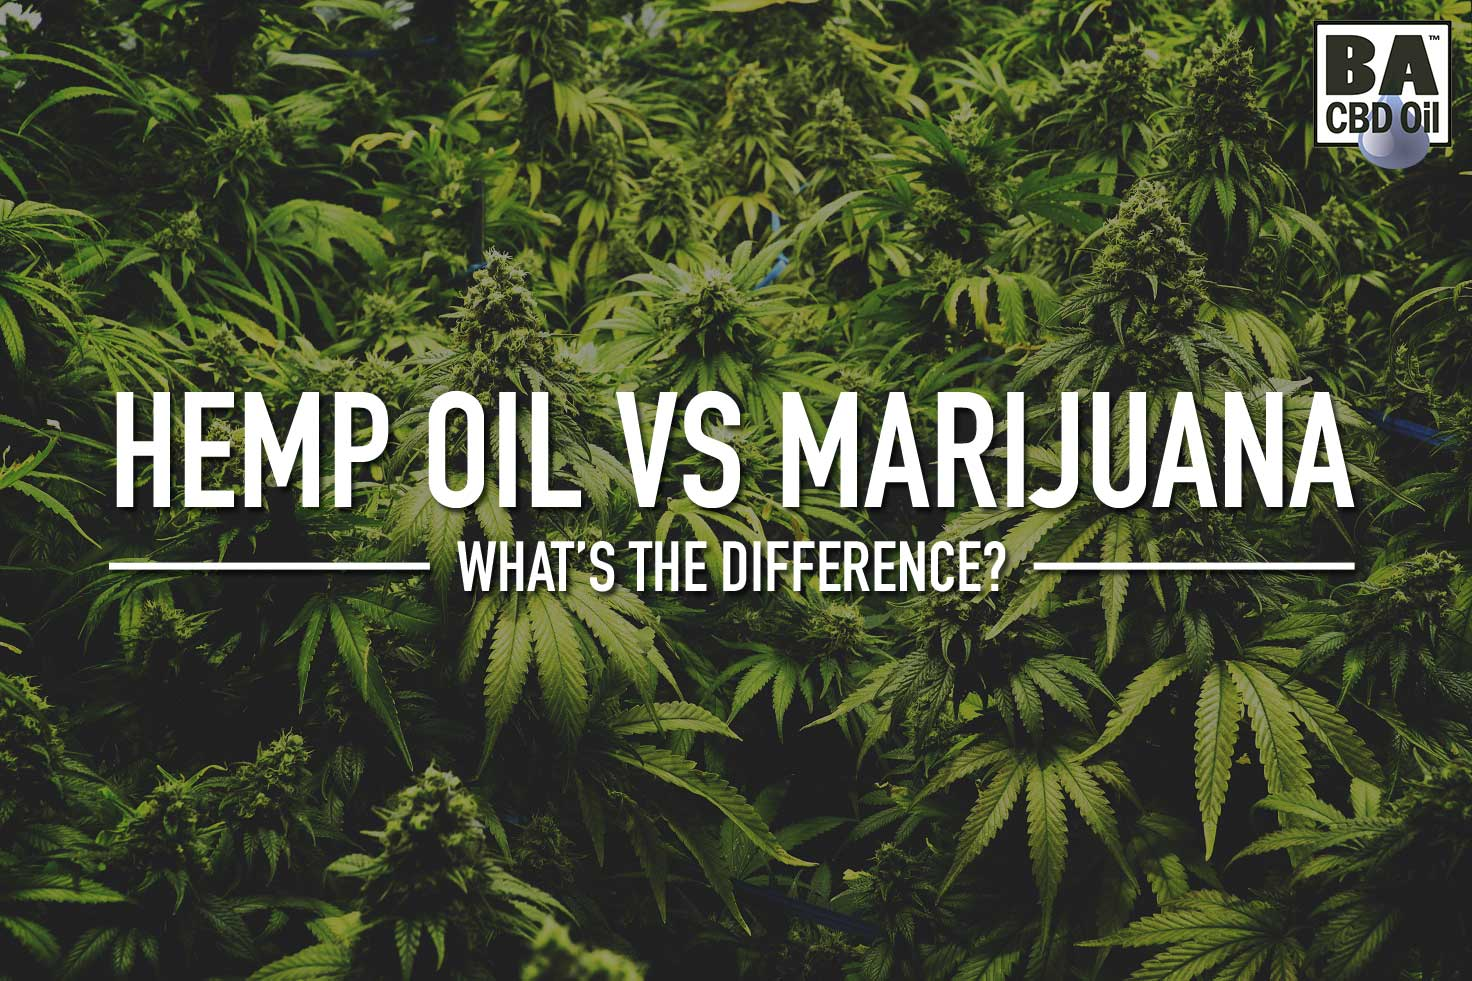 hemp oil vs marijuana